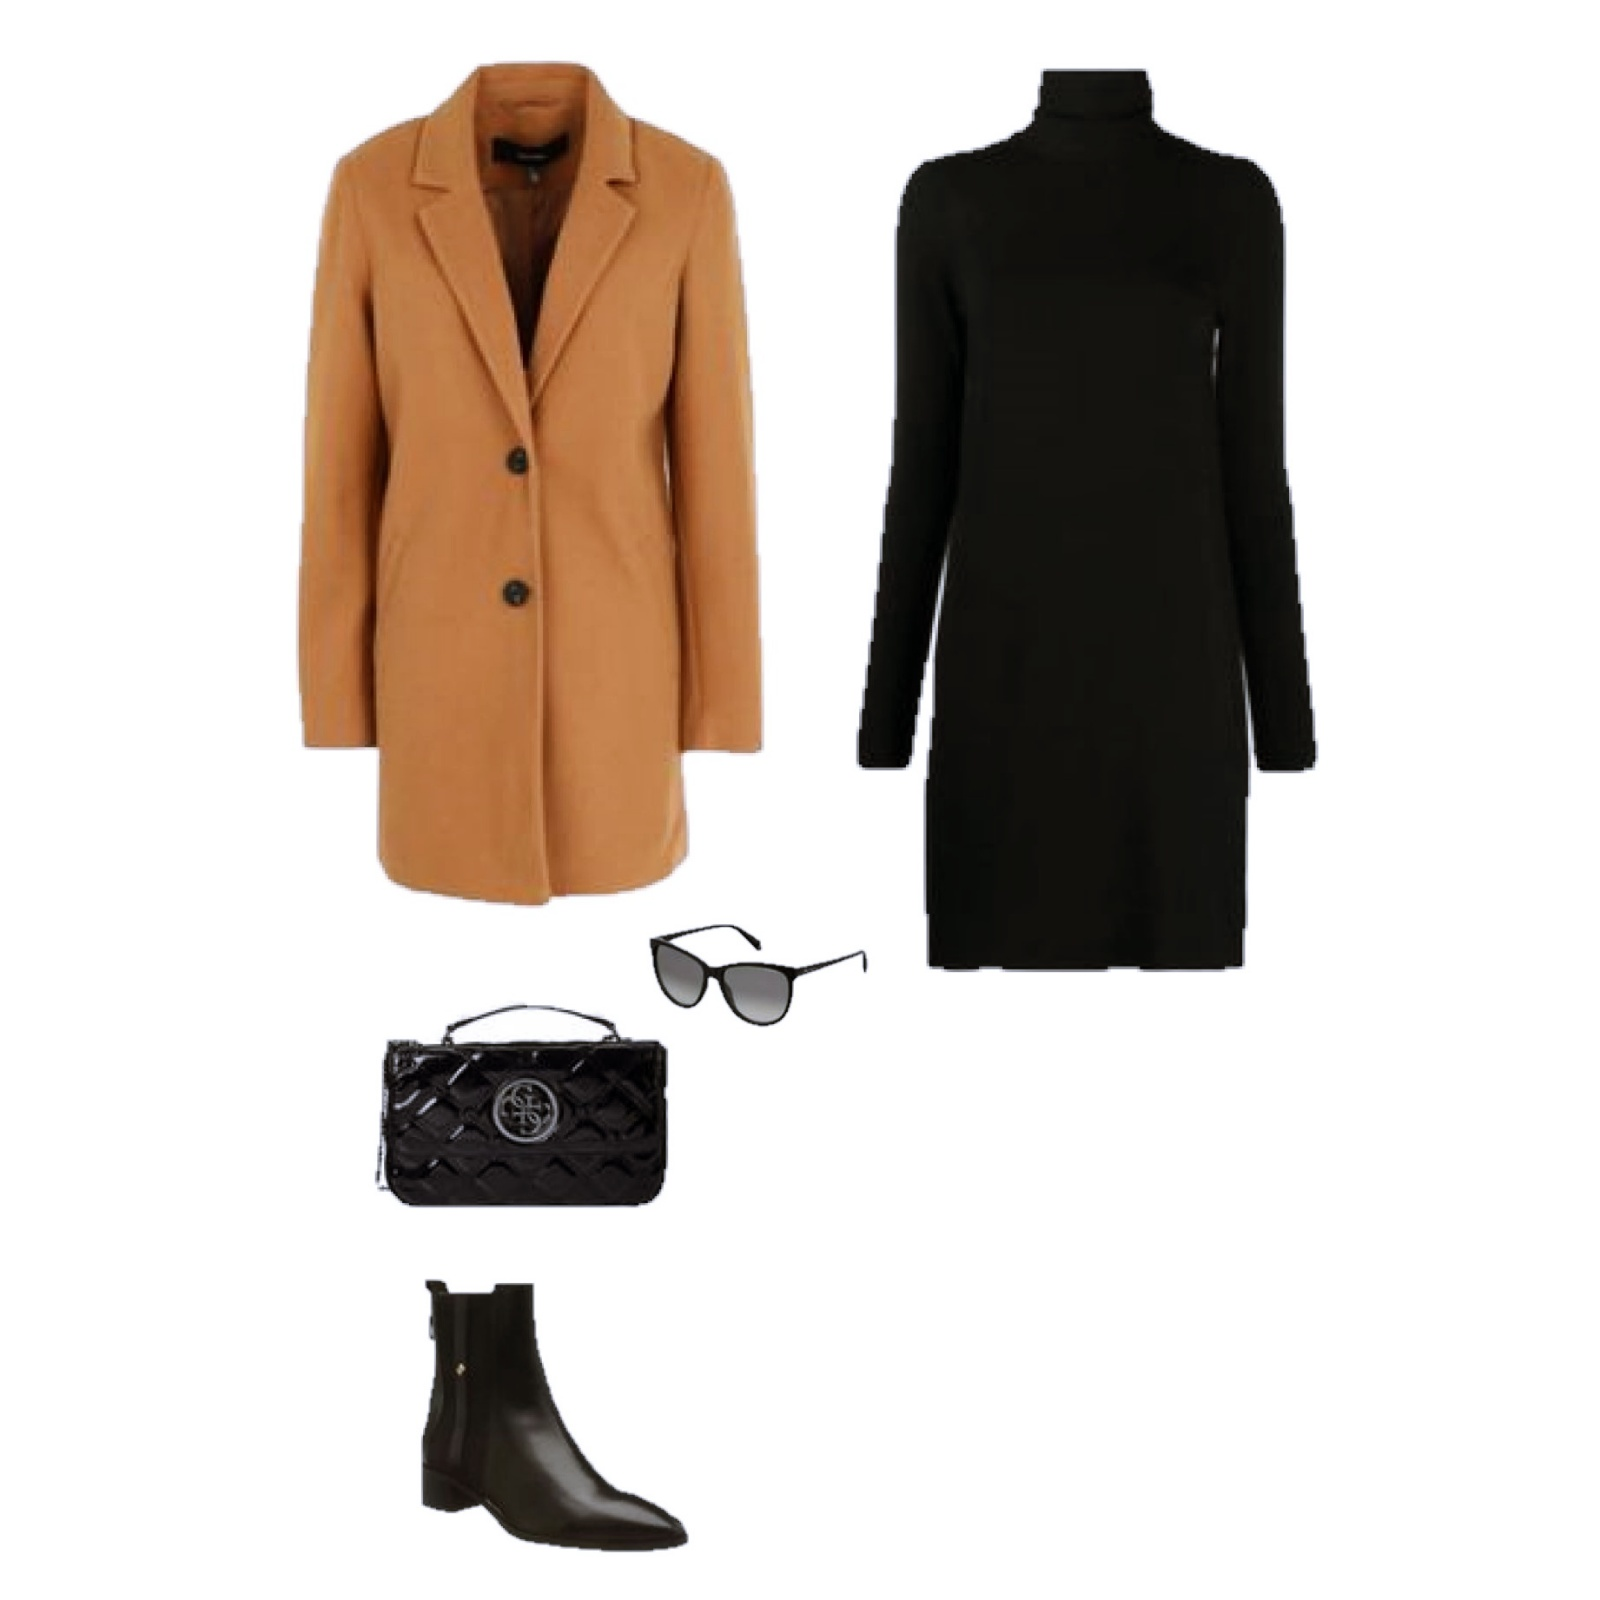 Outfit of the day: a black turtleneck sweater dress